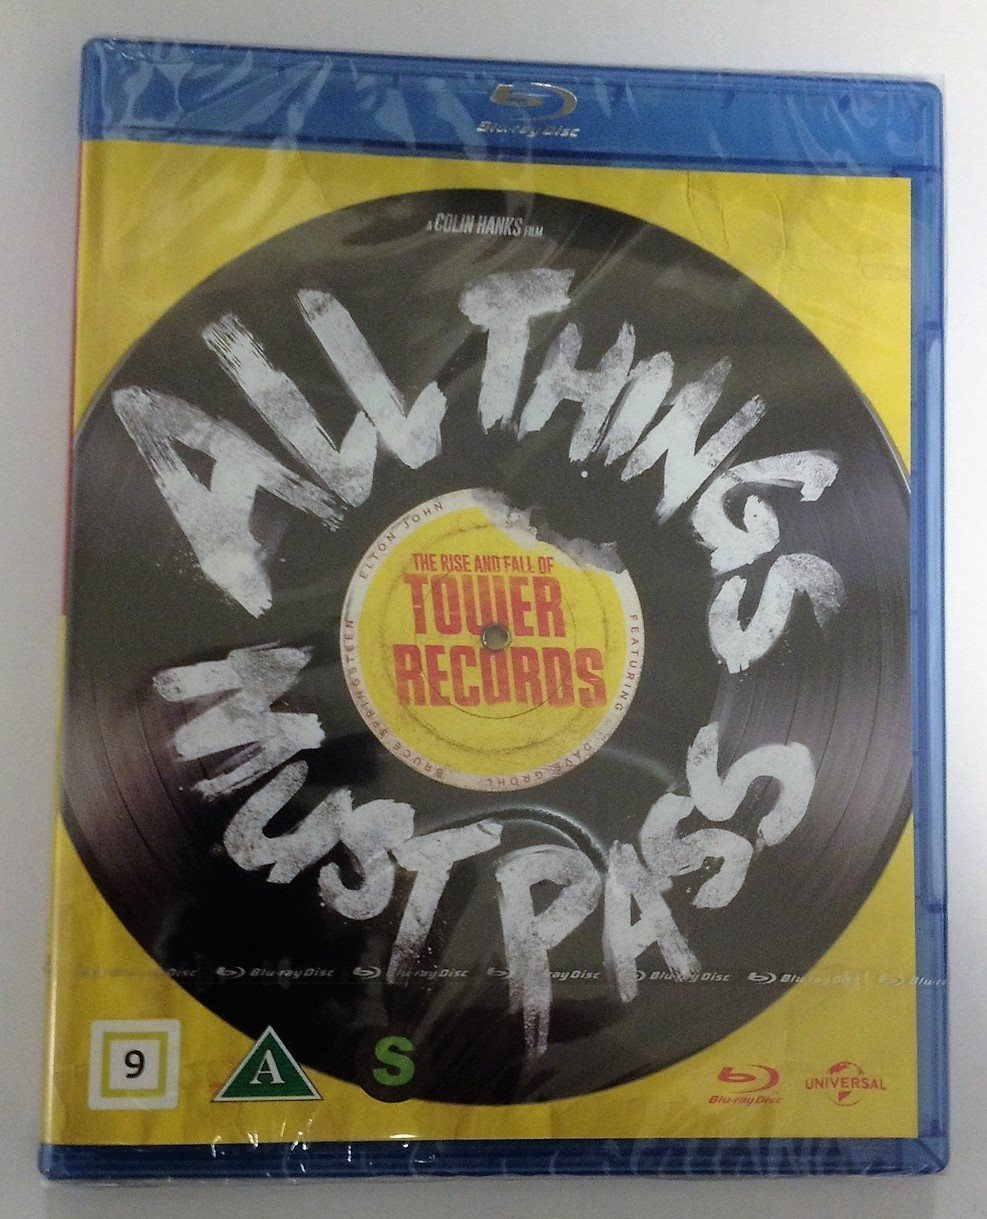 All things must pass - med Springsteen, Elton John m fl - obruten förpackning